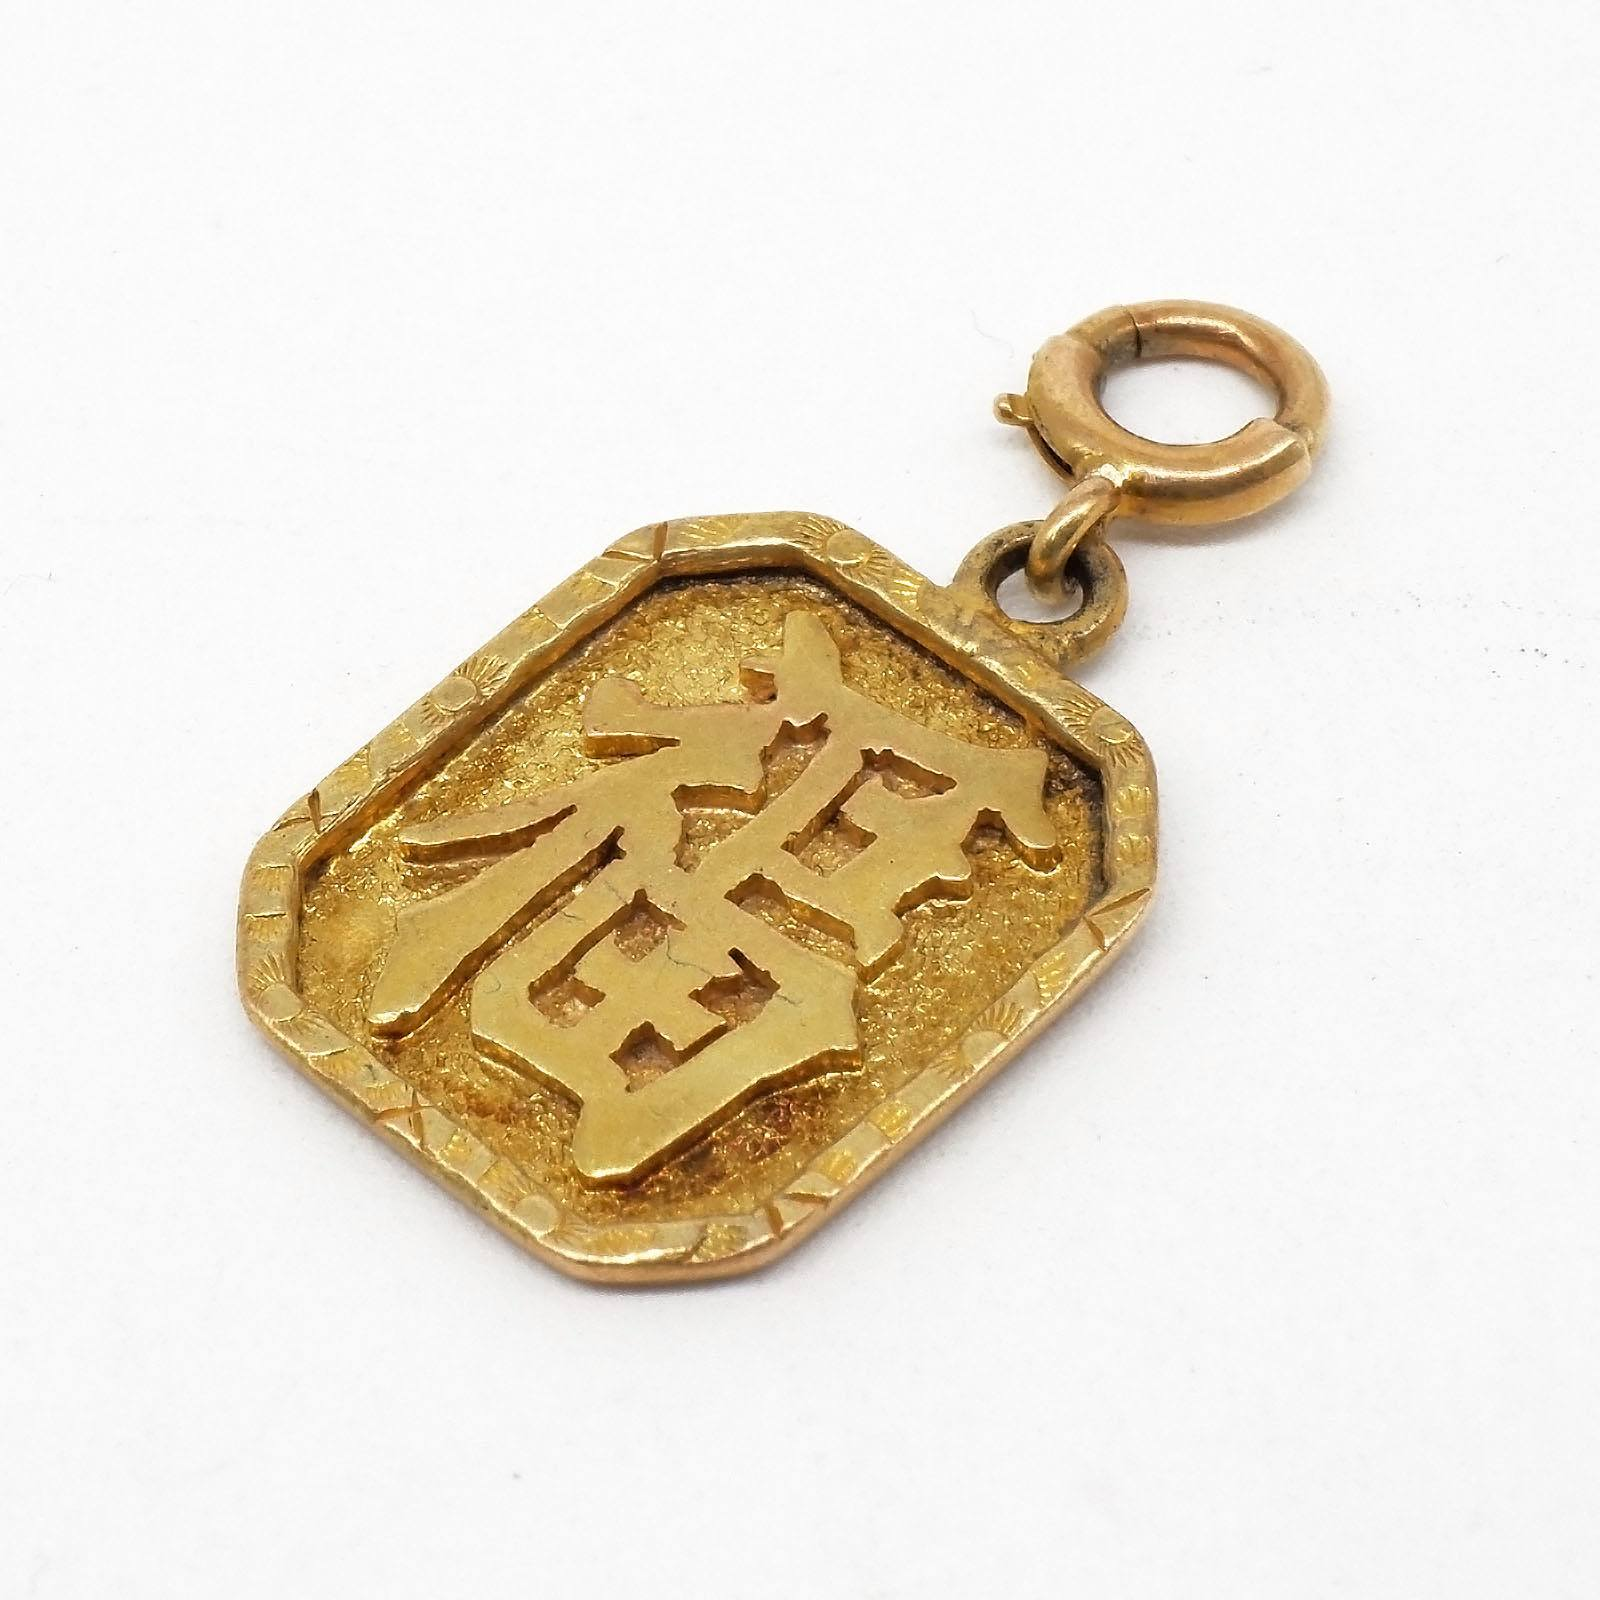 'Chinese 14ct Yellow Gold Hexagonal Shaped Pendant with Chinese Character'